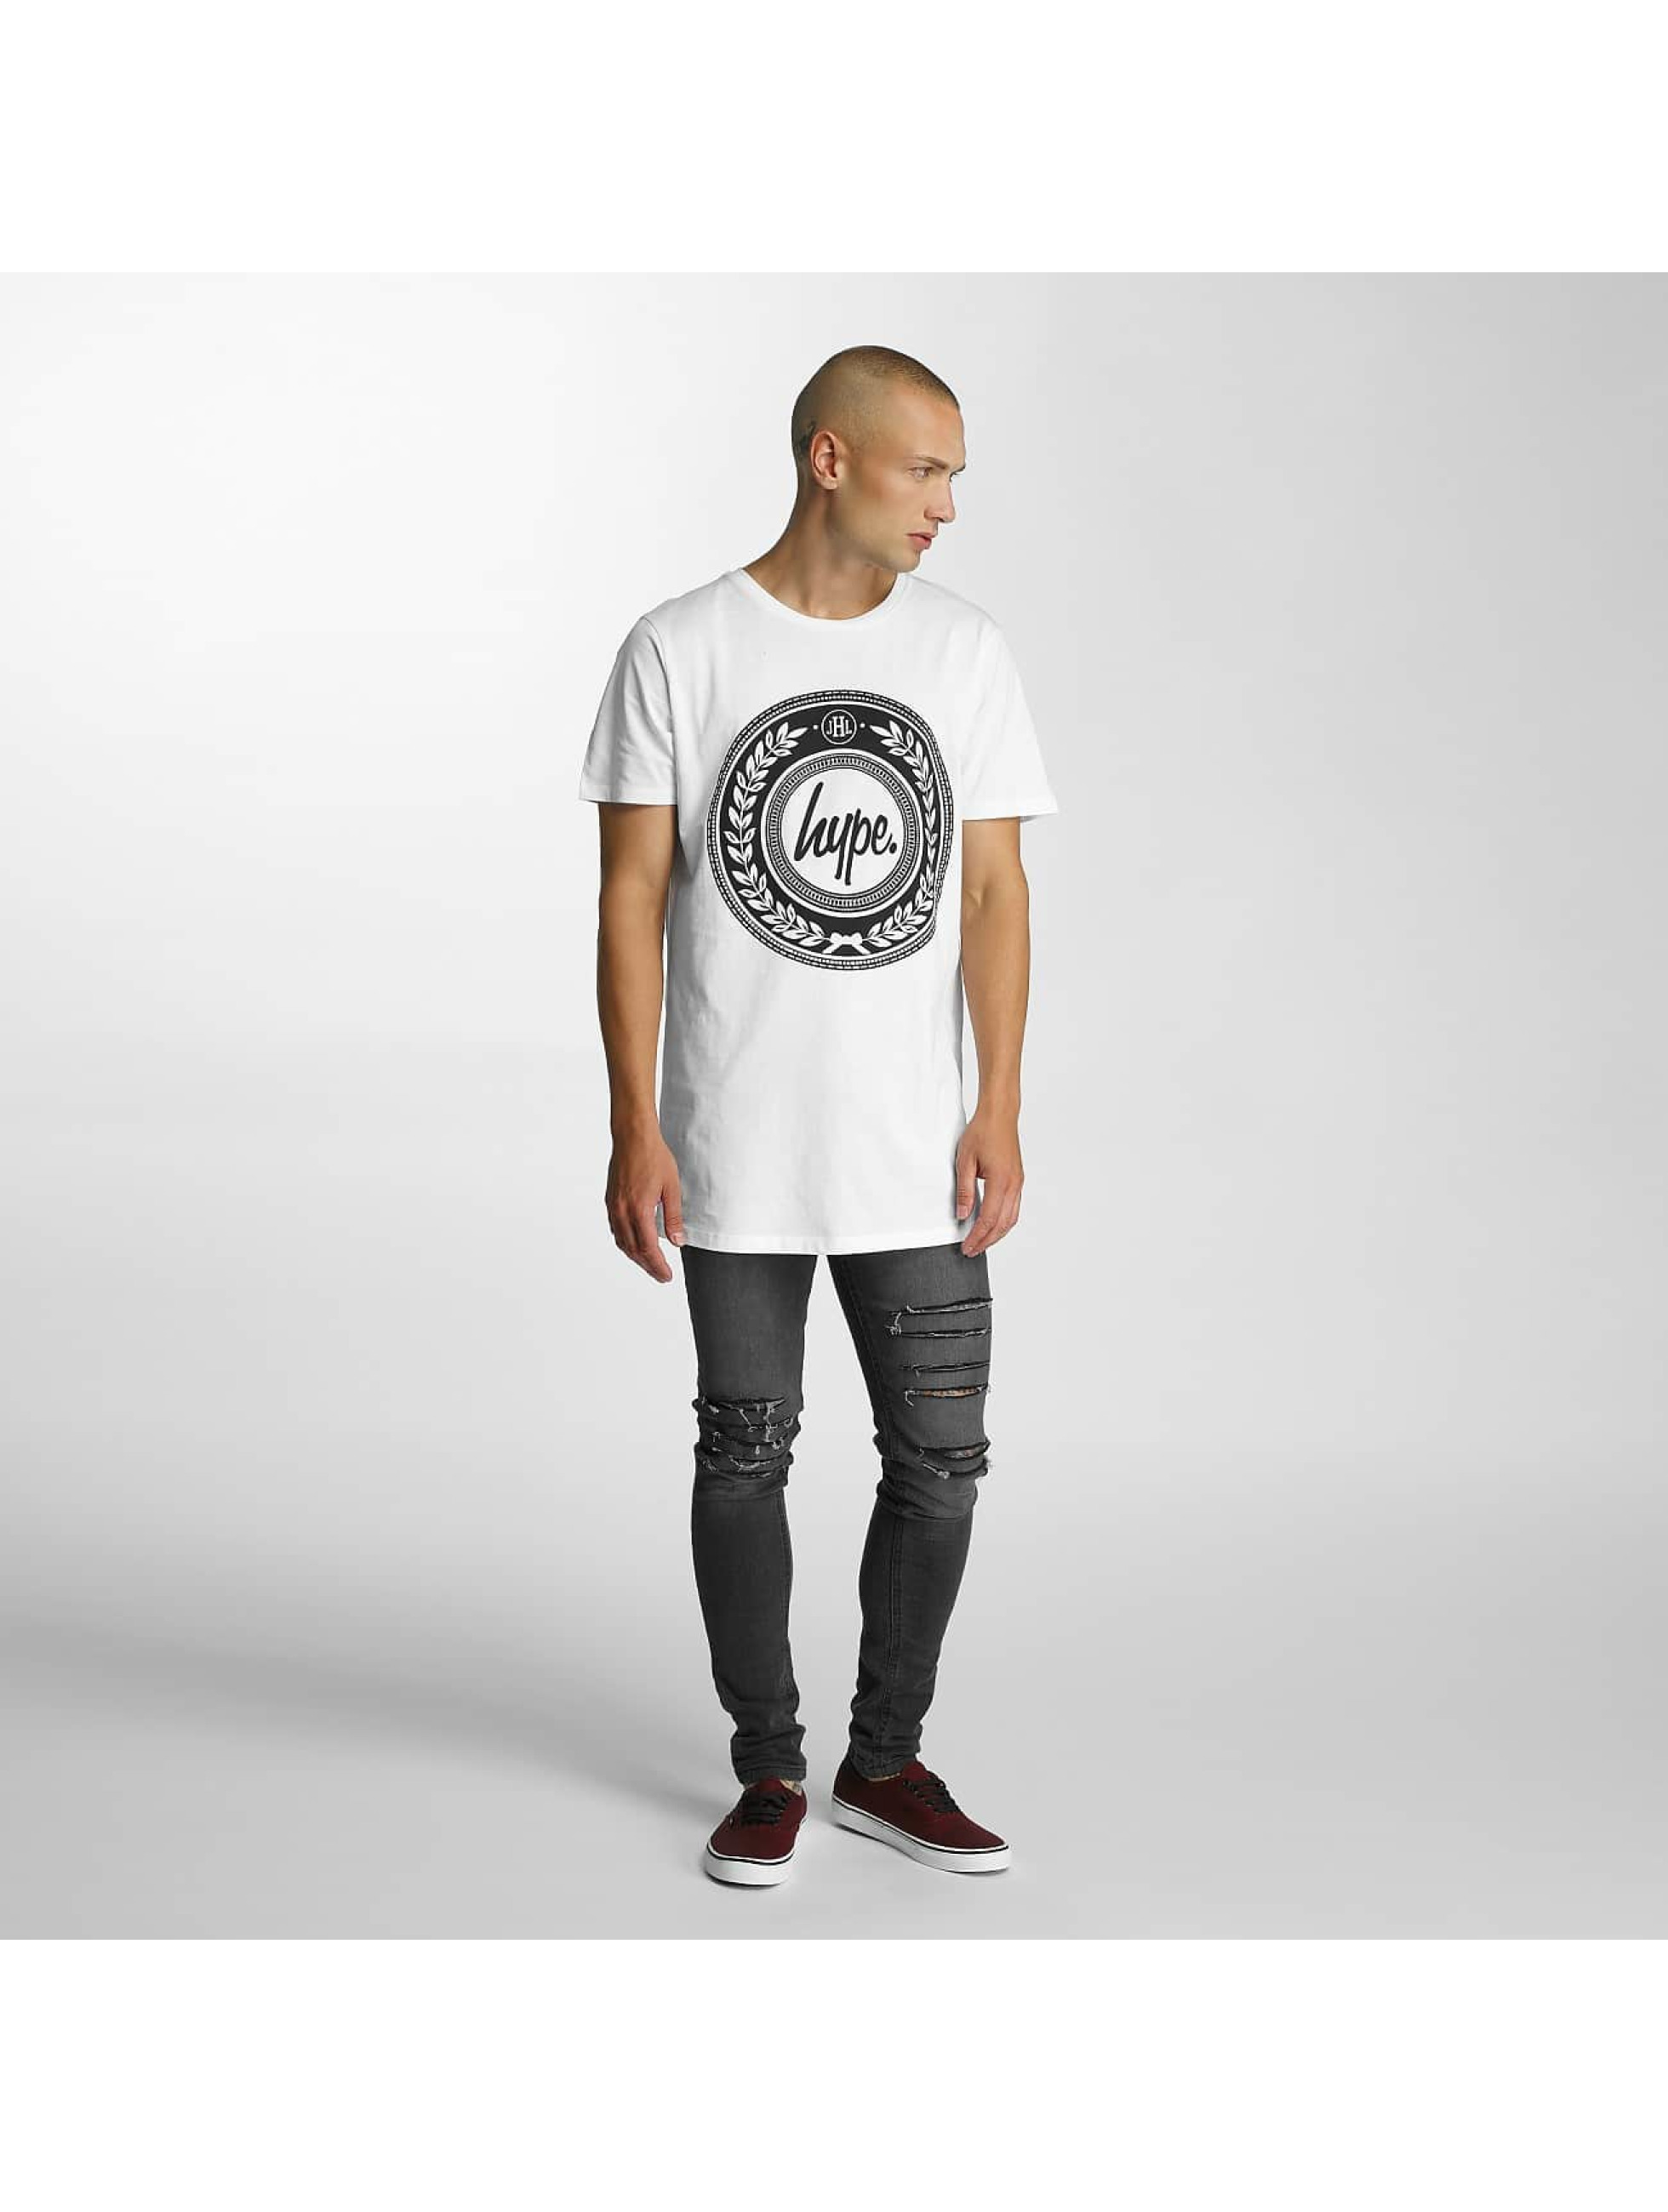 HYPE T-Shirt Reef Dished weiß